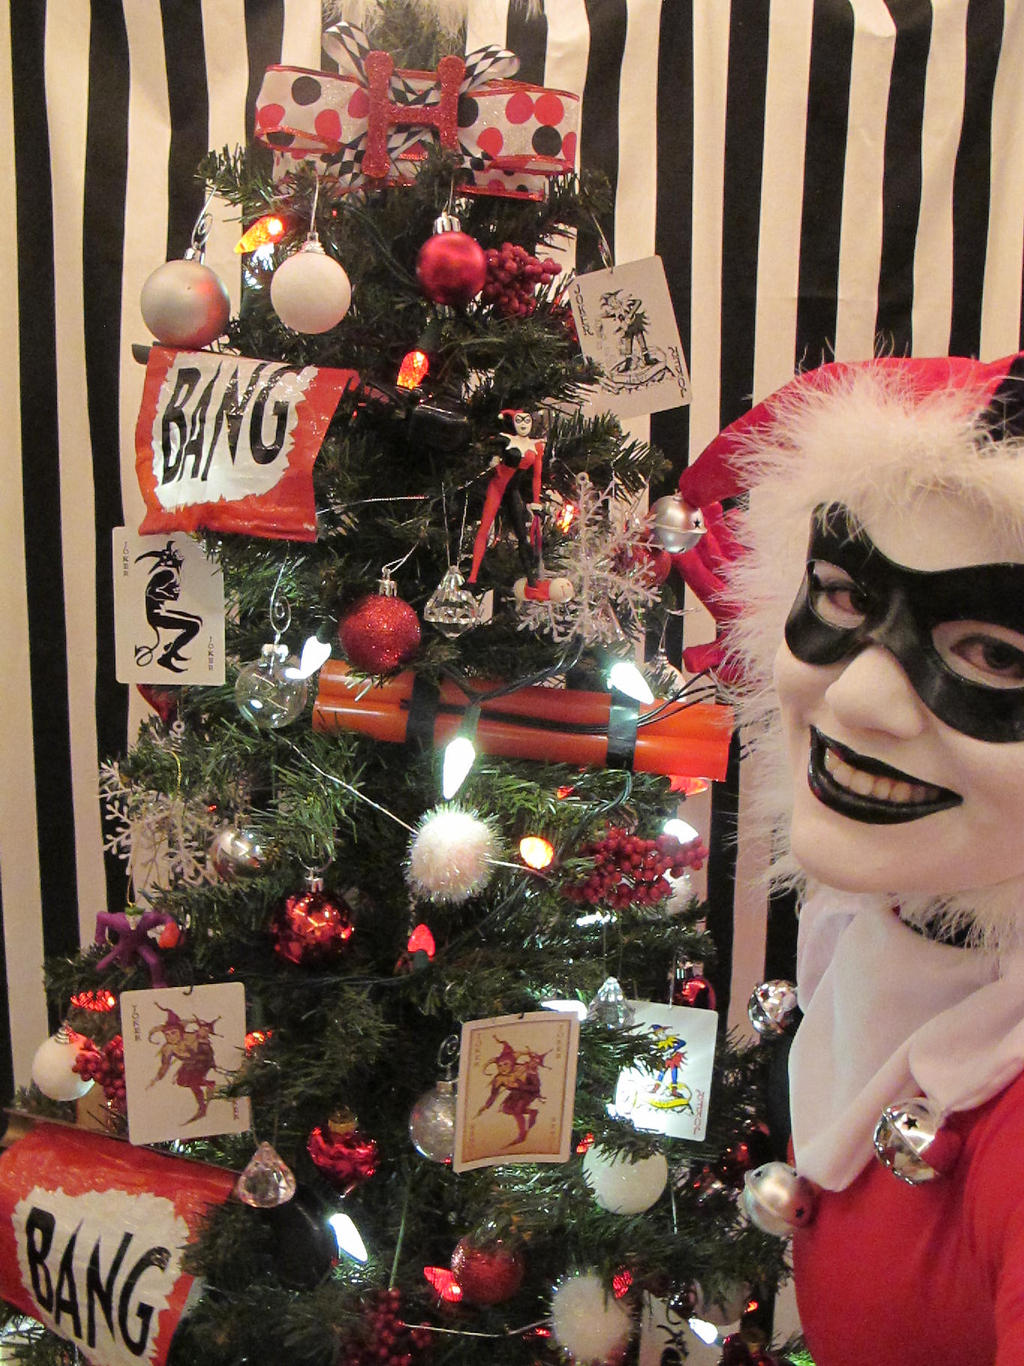 Harley Quinn Christmas Tree 13 by Lady-Ha-ha on DeviantArt